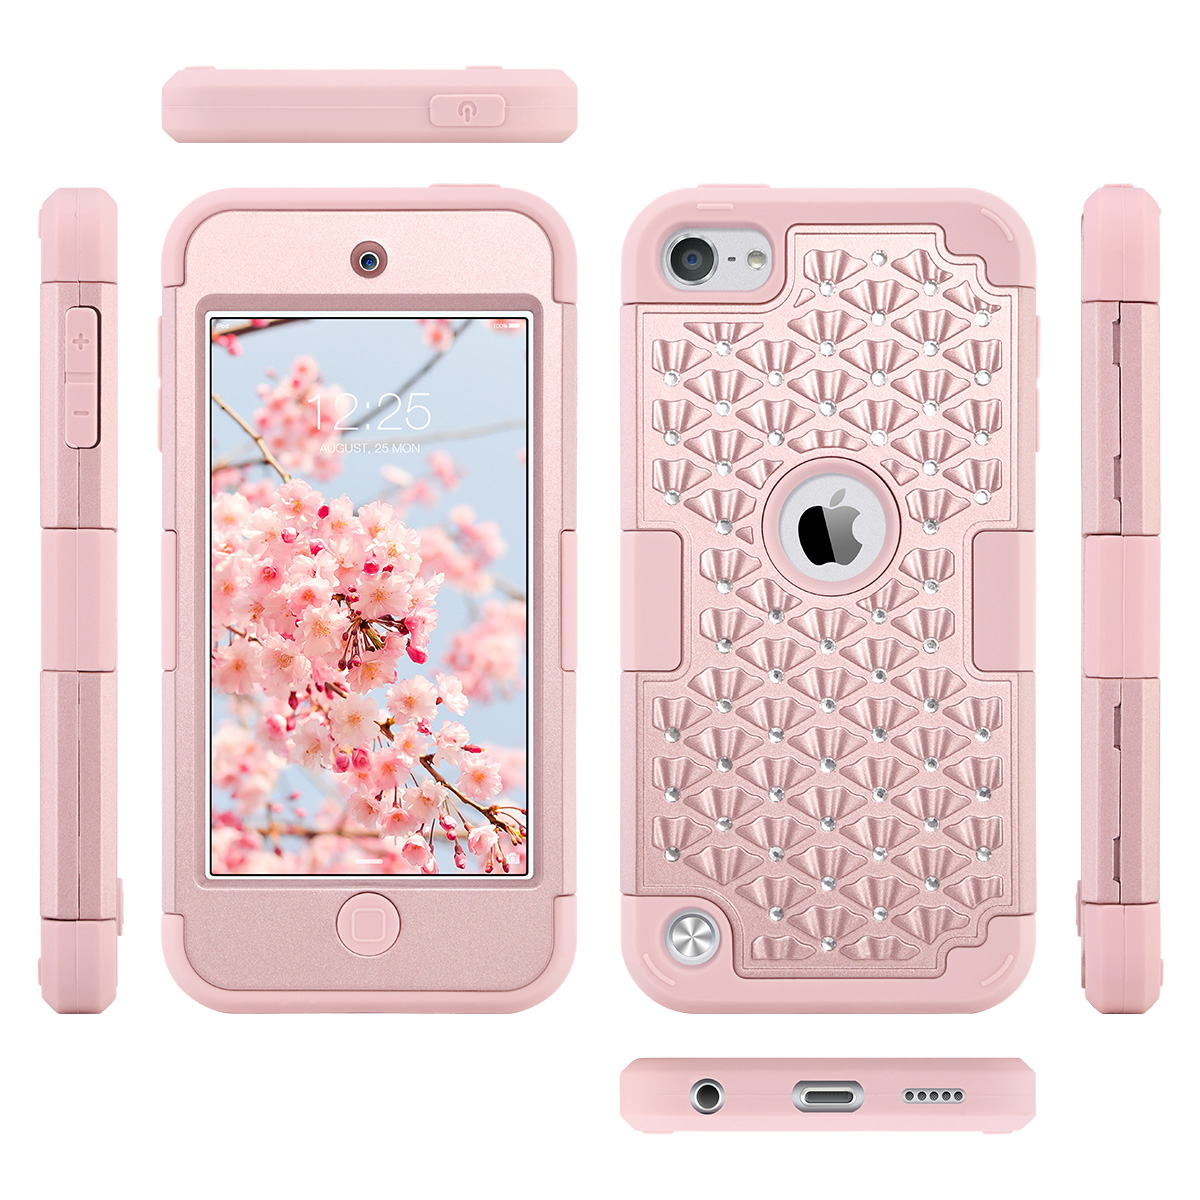 Hybrid-Hard-Protective-Silicon-TPU-Case-for-Apple-iPod-Touch-5-6th-Generation thumbnail 127